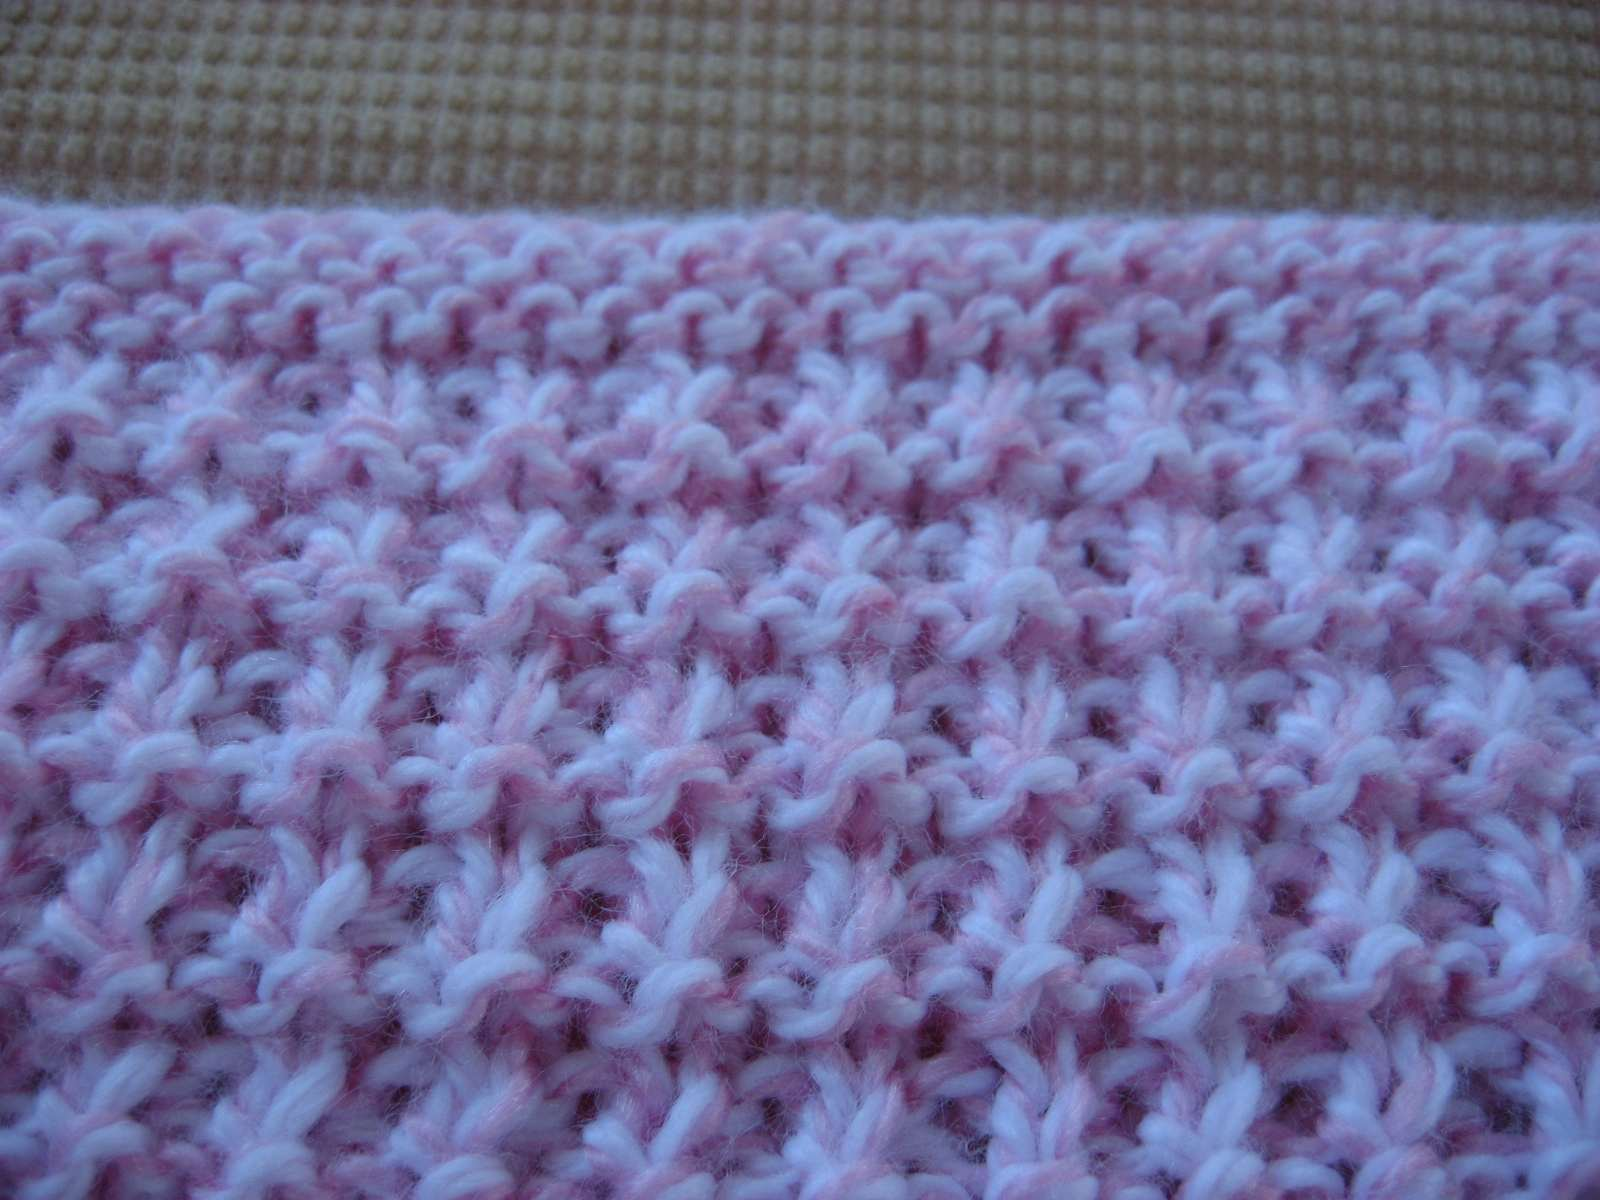 Knitting Stitches Gallery : stitches knitting-Knitting Gallery